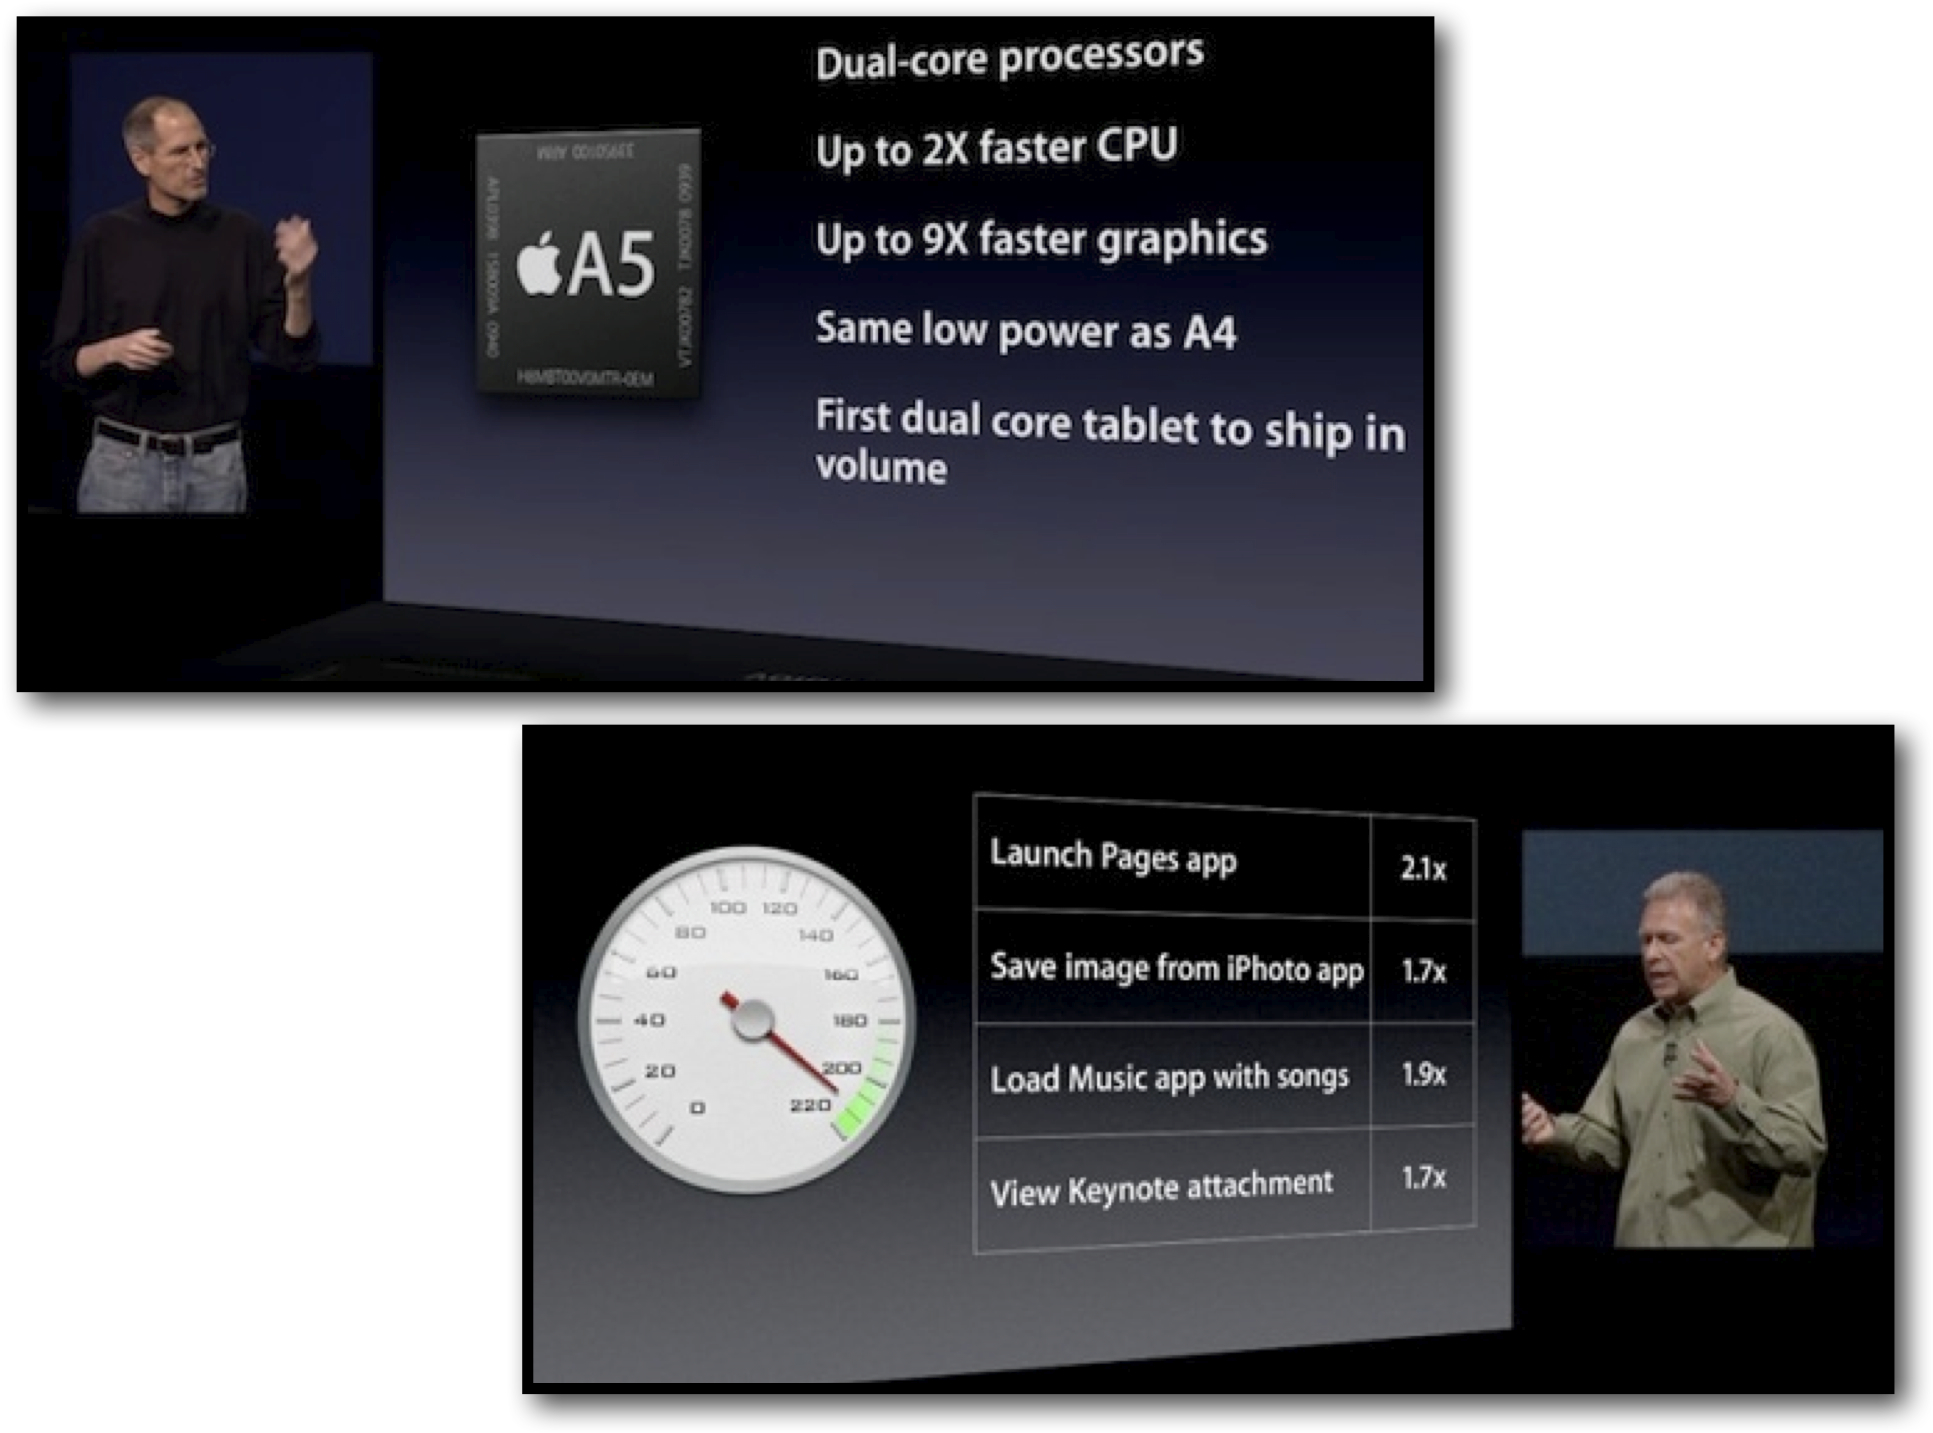 Steve Jobs and Phil Schiller Benchmarking the A5 and A6 Processors